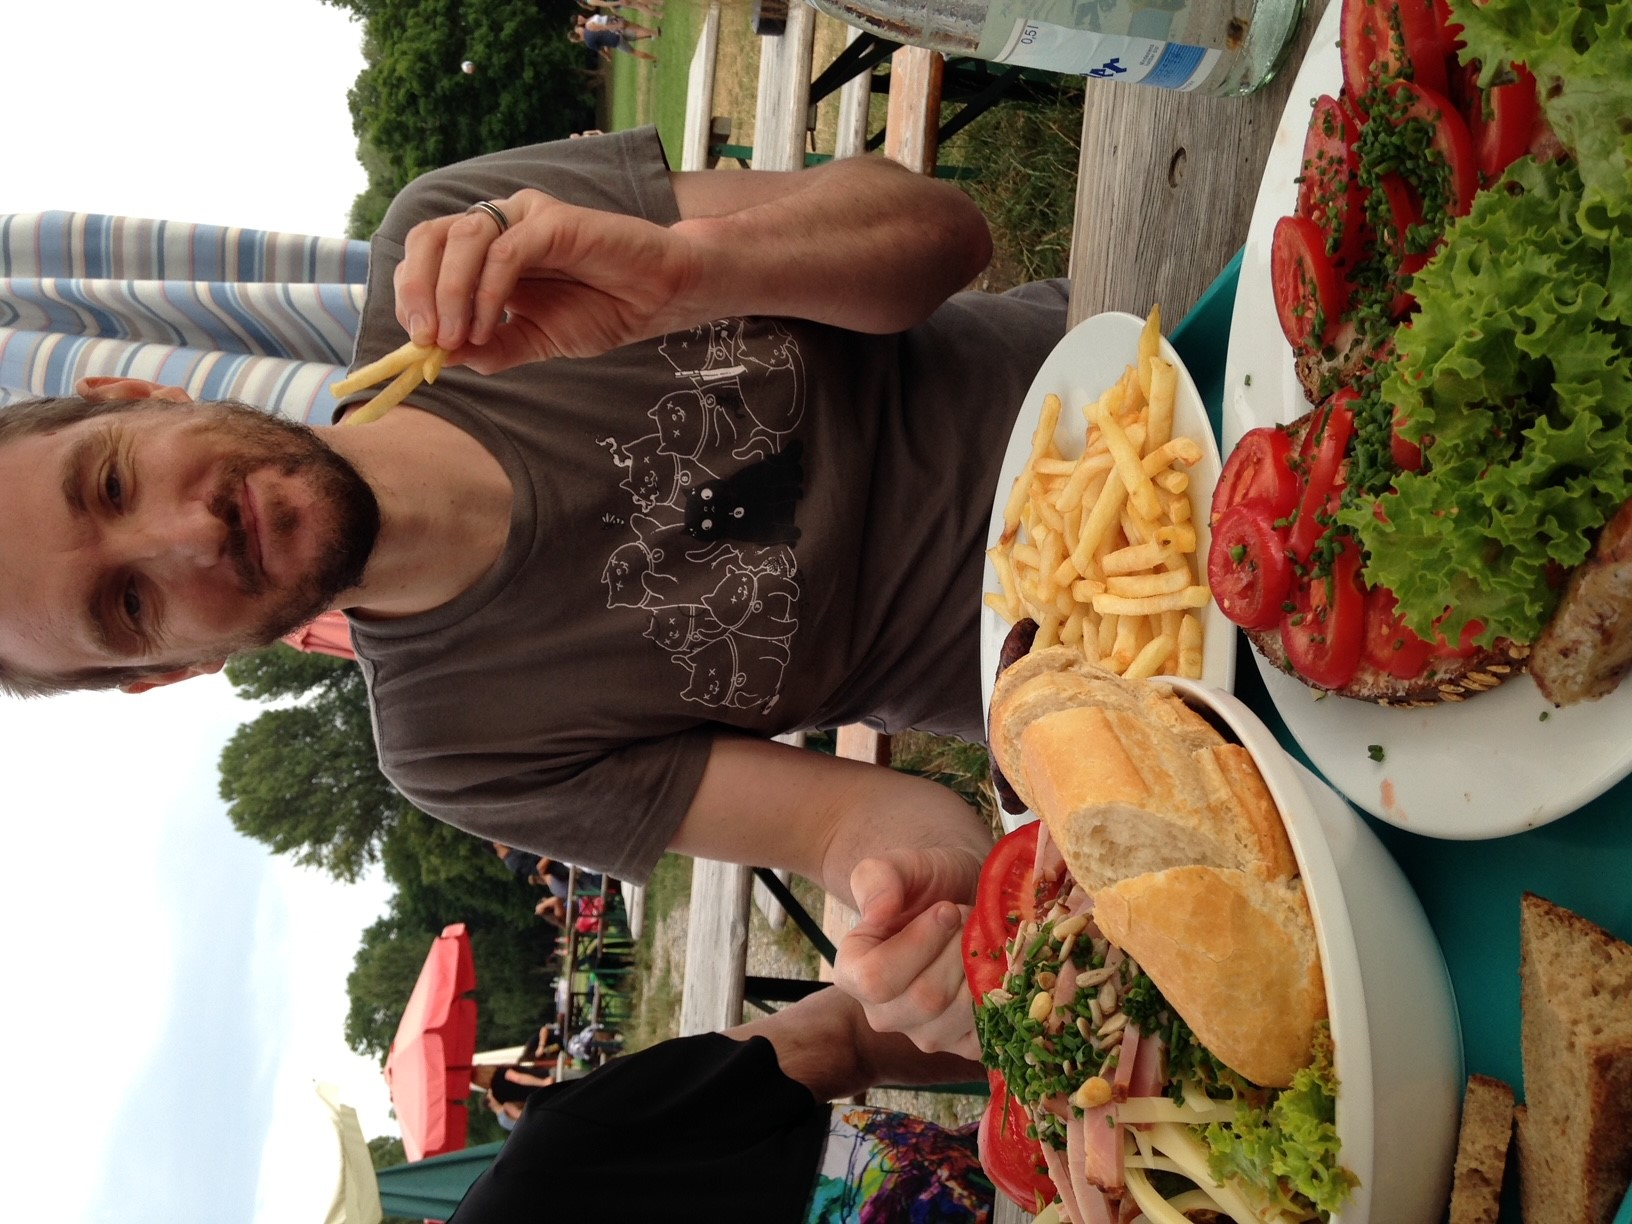 Leigh on one of his few outings in Germany after suffering a chronic pain episode on a family holiday.